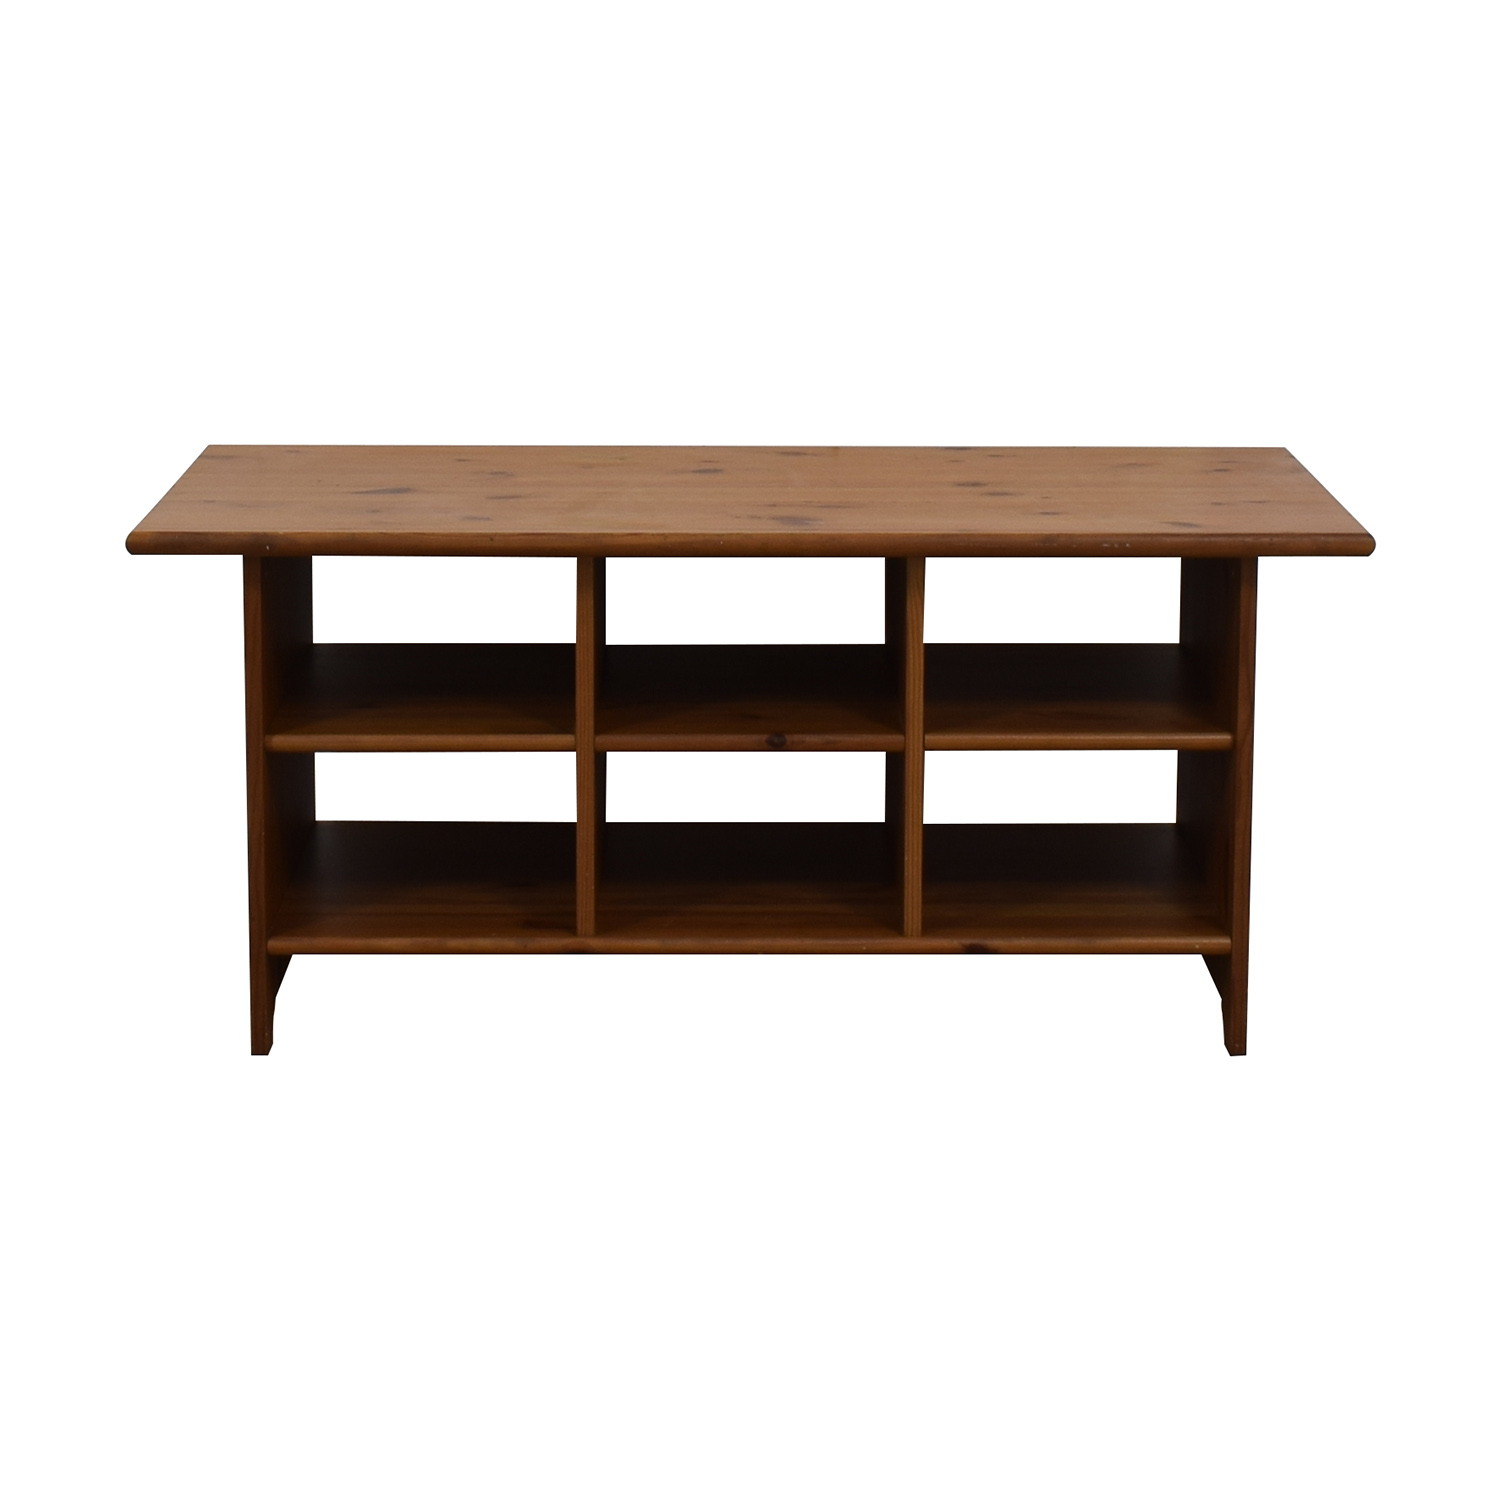 Coffee Table Ikea.66 Off Ikea Ikea Leksvik Coffee Table Tables